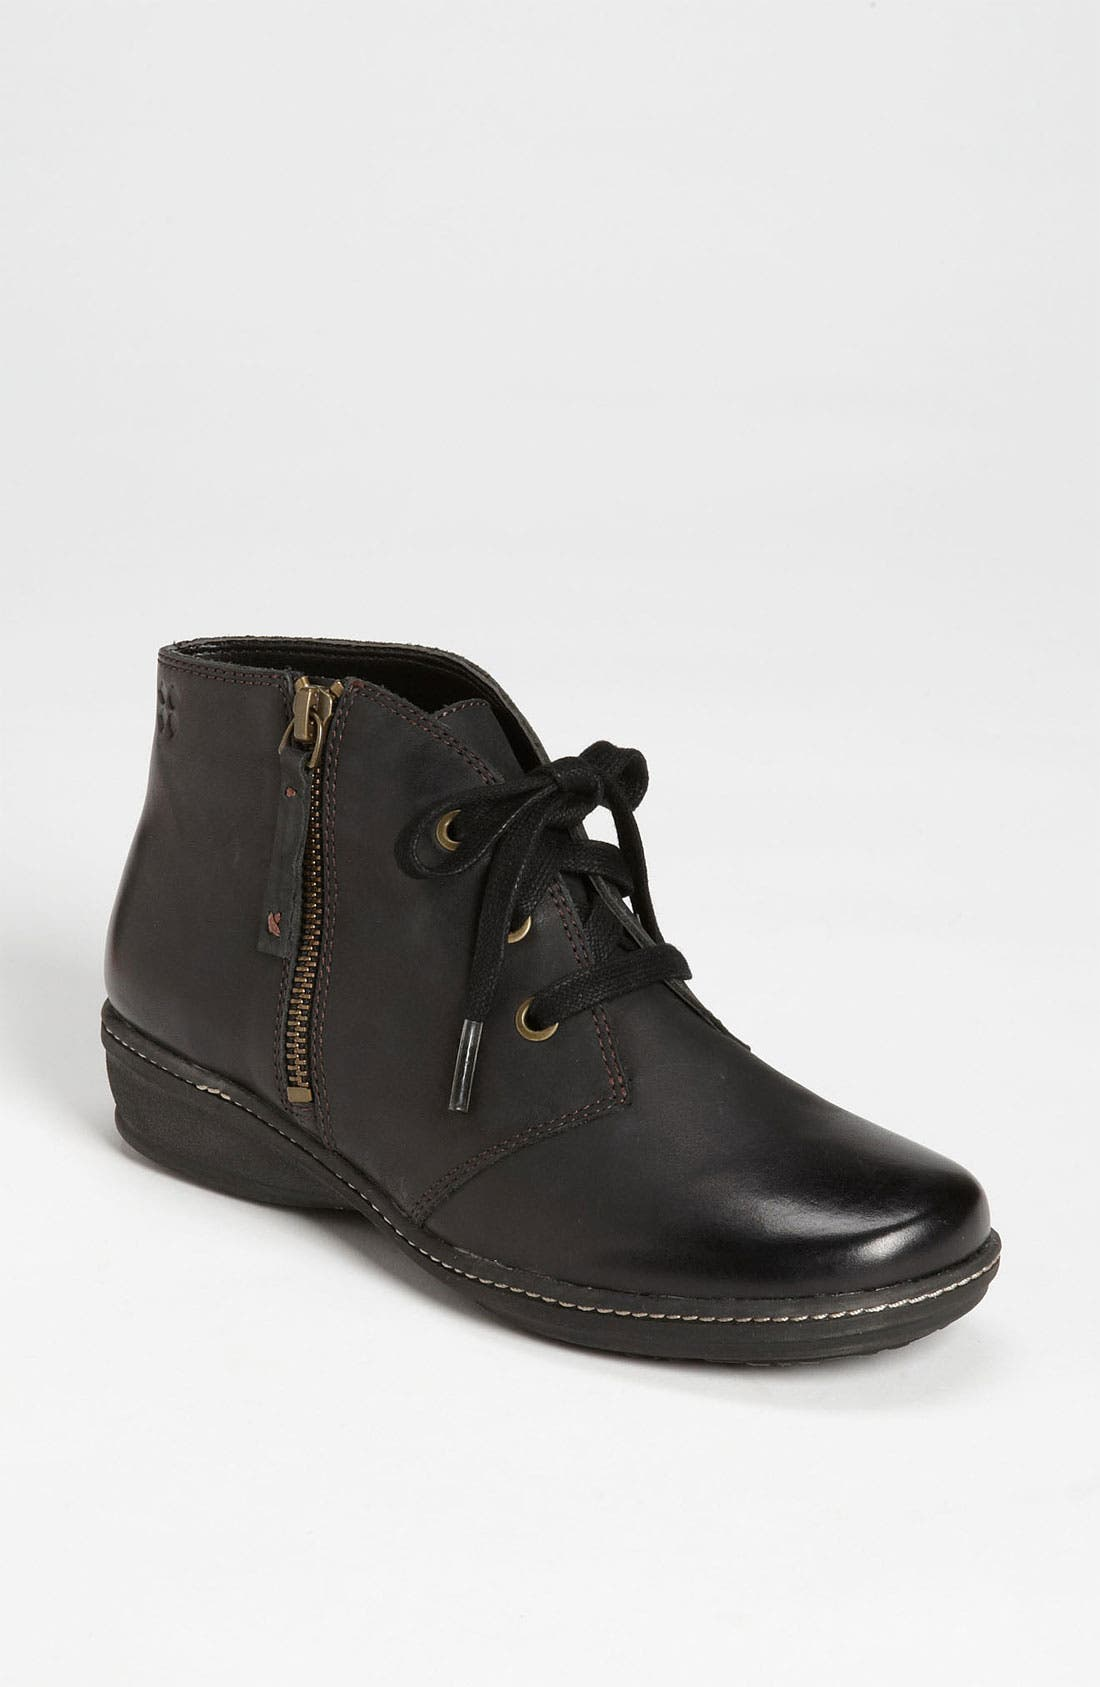 Main Image - Naturalizer 'Medley' Boot